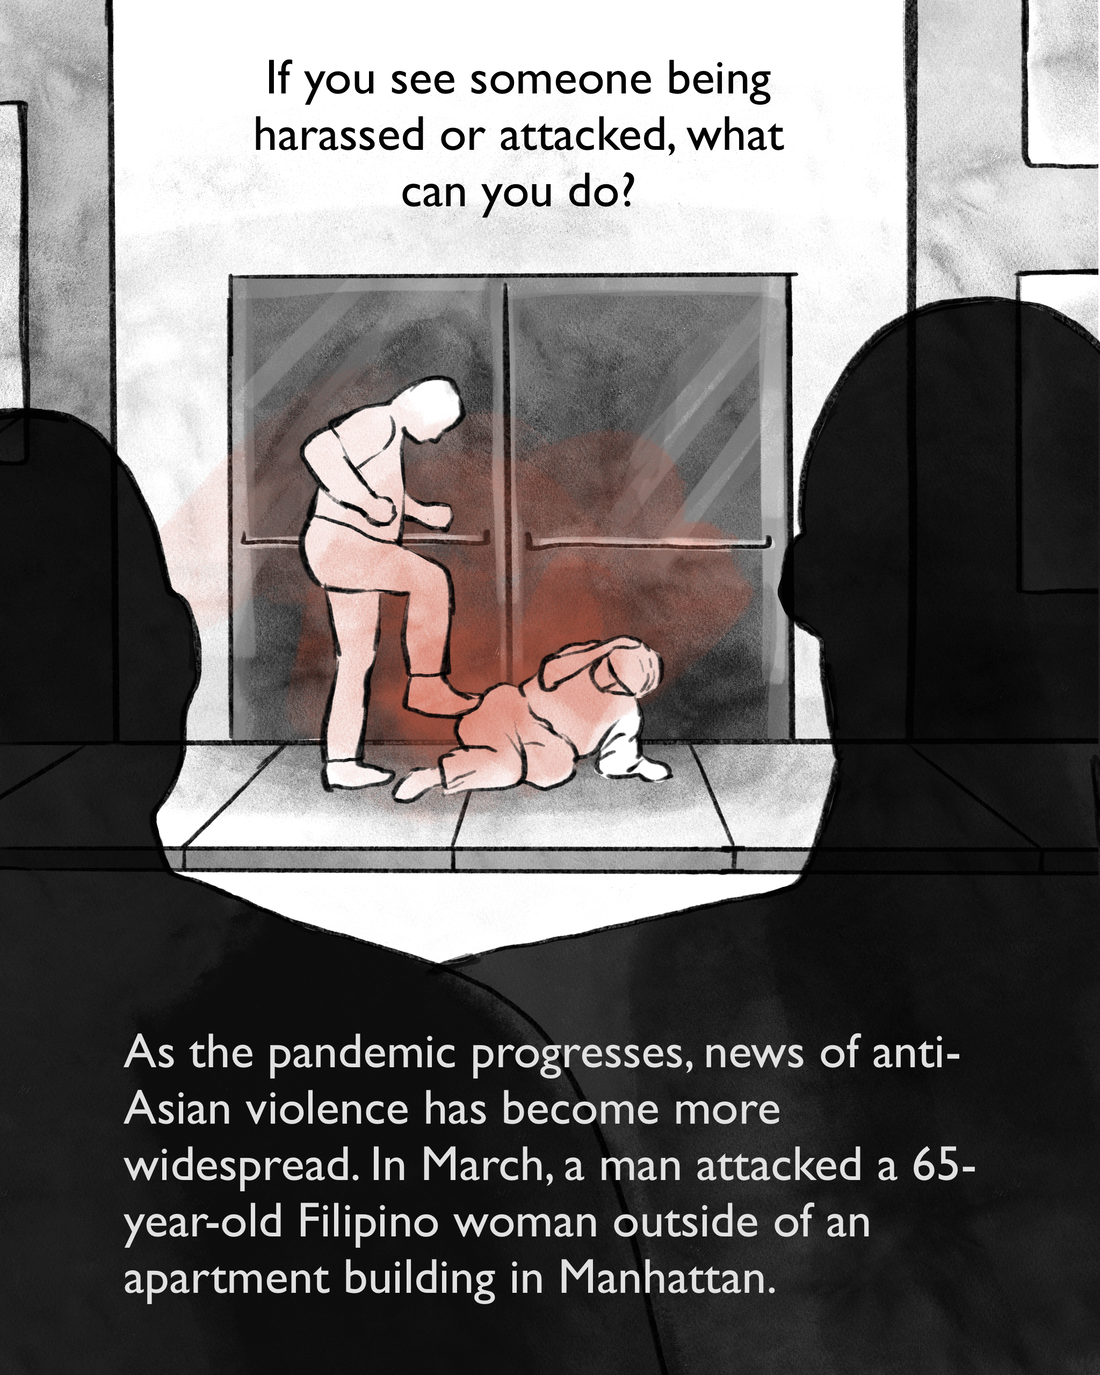 If you see someone being harassed or attacked, what can you do? As the pandemic progresses, news of anti-Asian violence has become more widespread. In March, a man attacked a 65-year-old Filipino woman outside of an apartment building in Manhattan. [Image description: A man kicks an elderly woman on the ground as bystanders look on.]